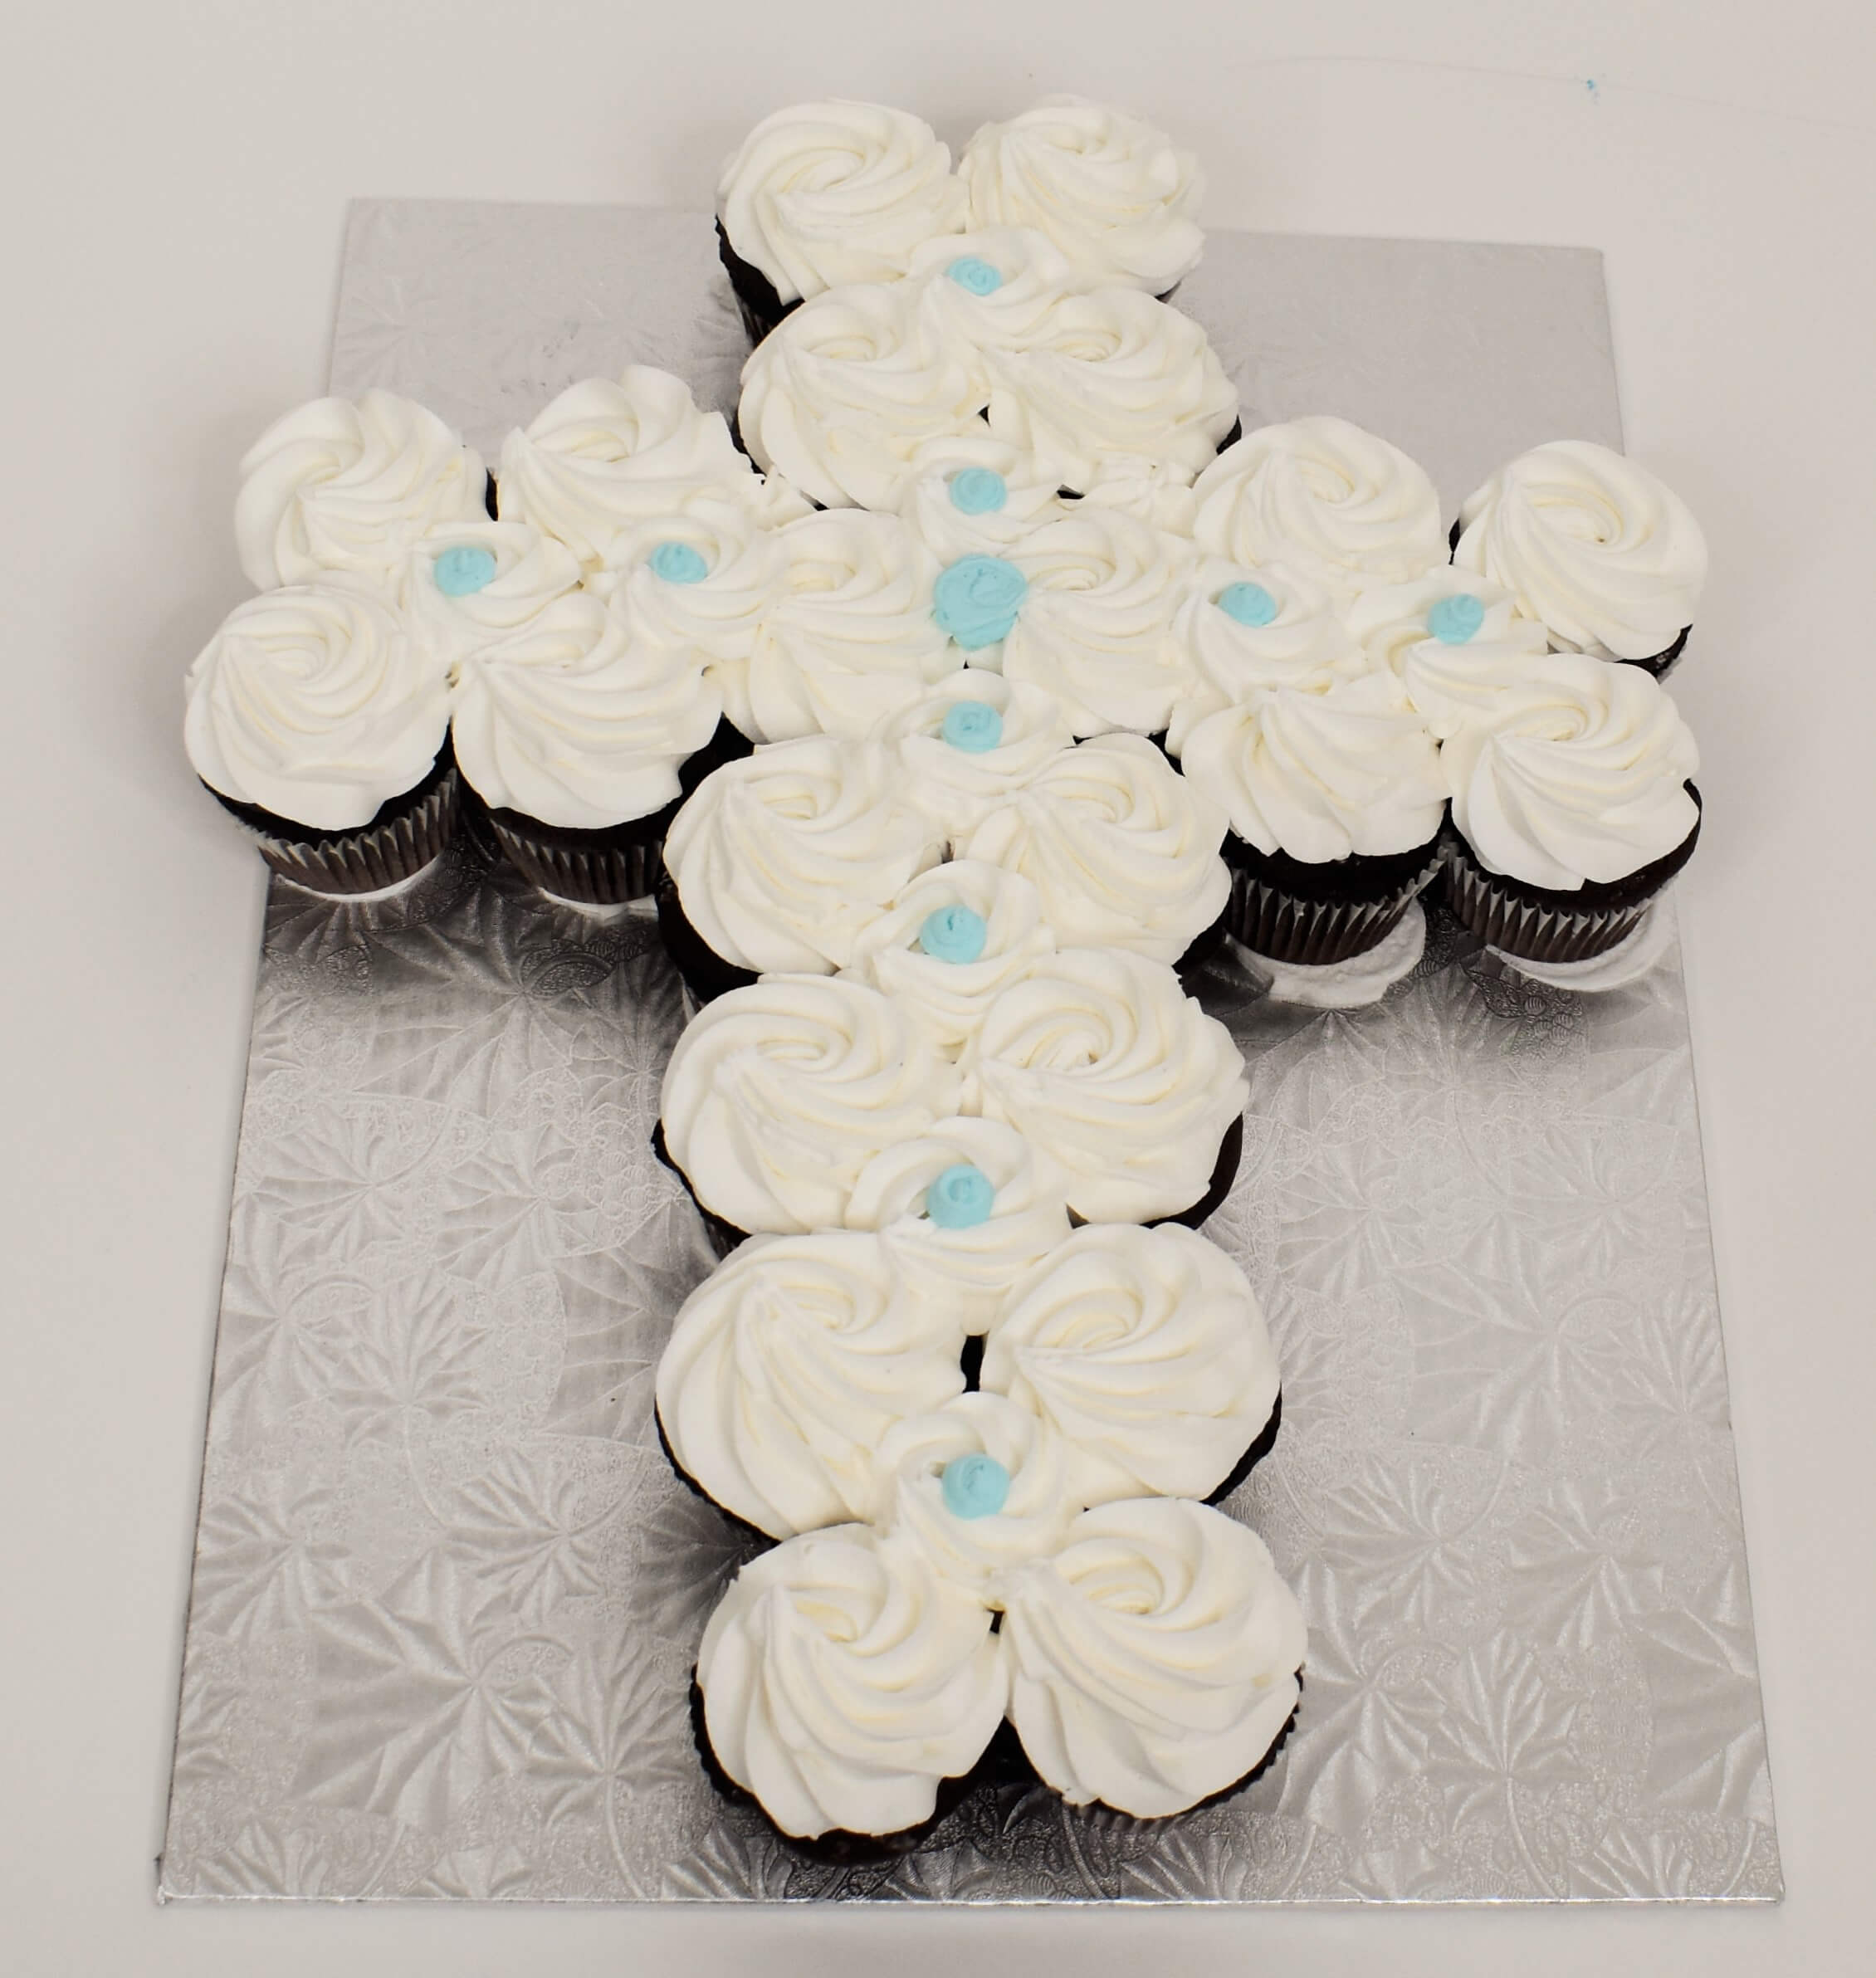 McArthur's Bakery Cupcake Cake In the shape of a cross with white and blue icing.